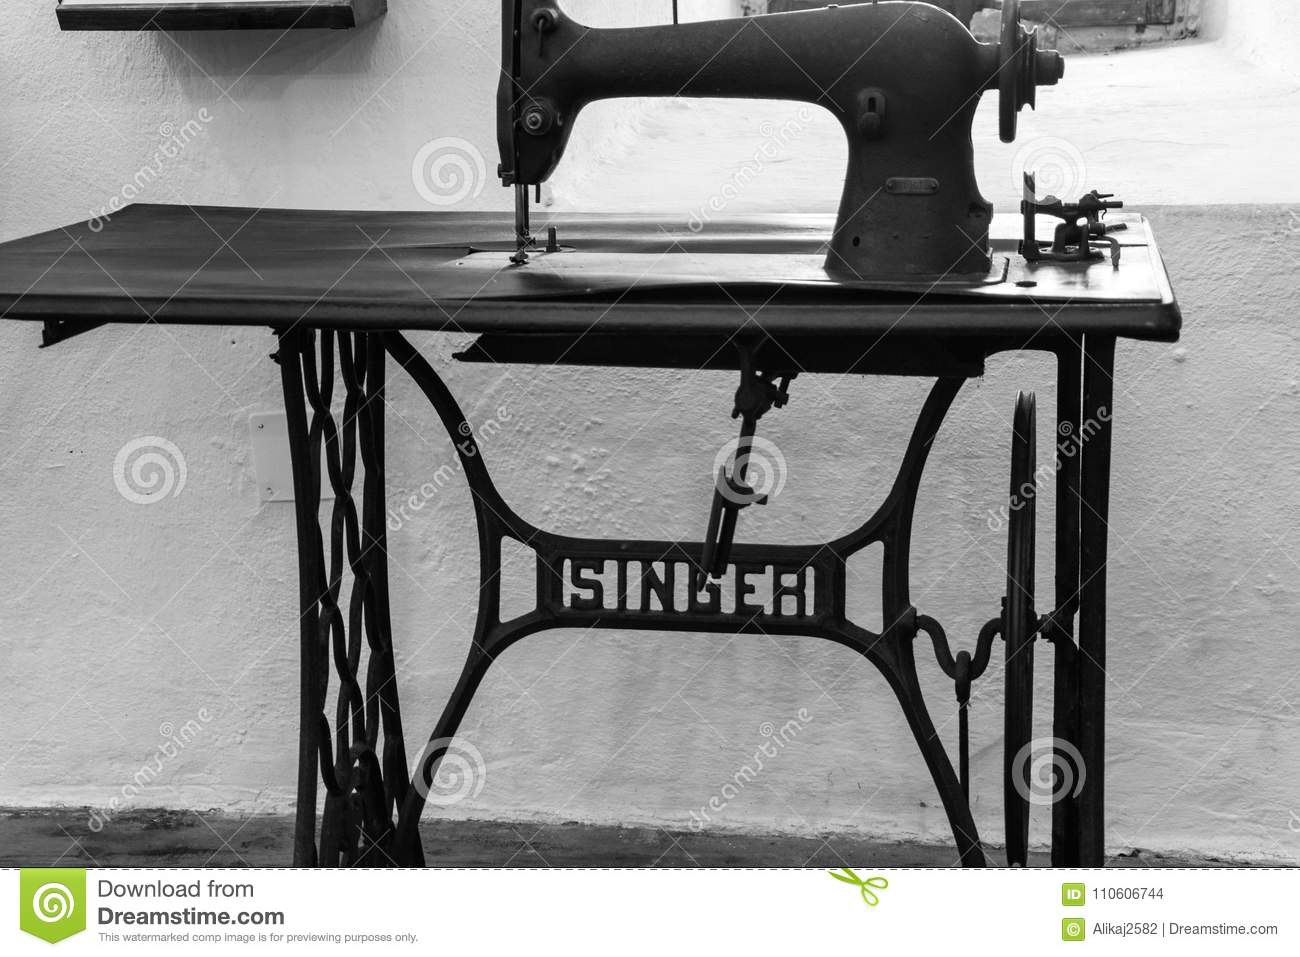 An antique manual `Singer` treadle sewing machine